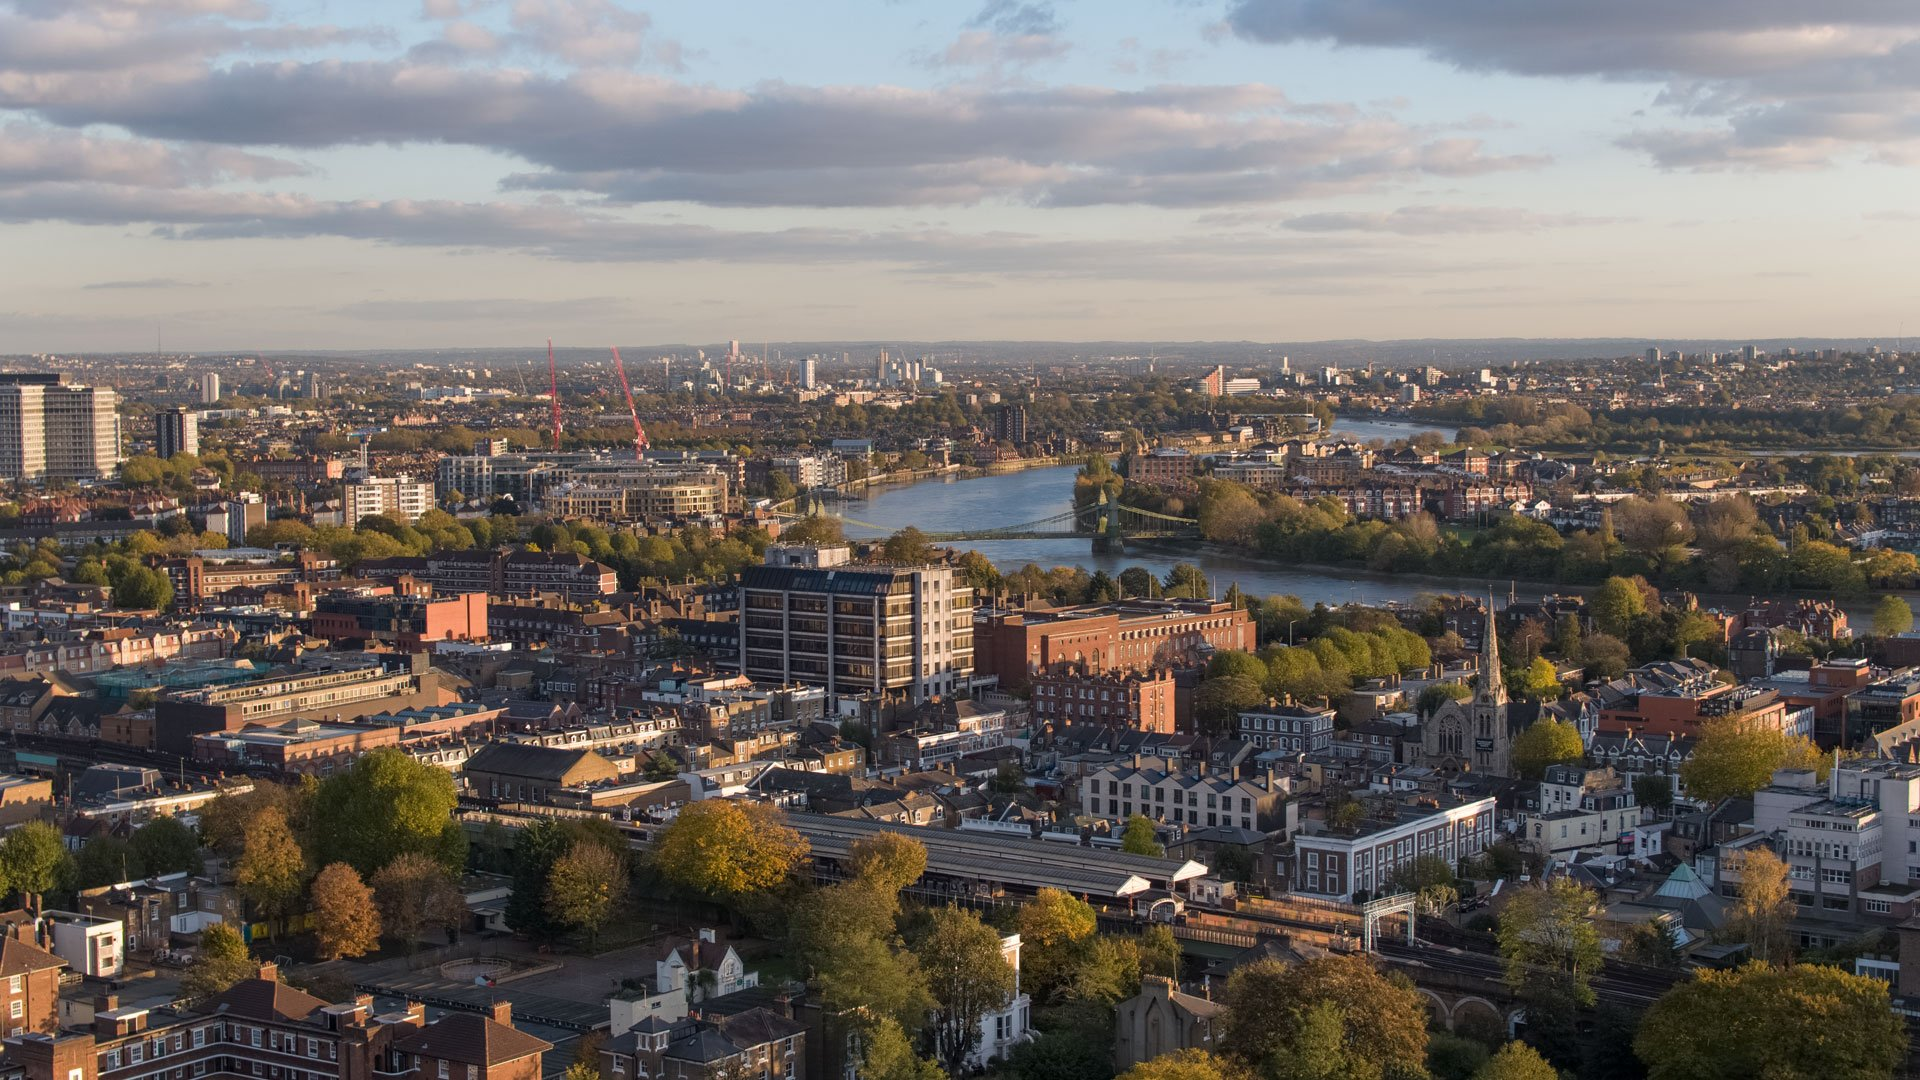 Aerial drone photography for Hammersmith town council